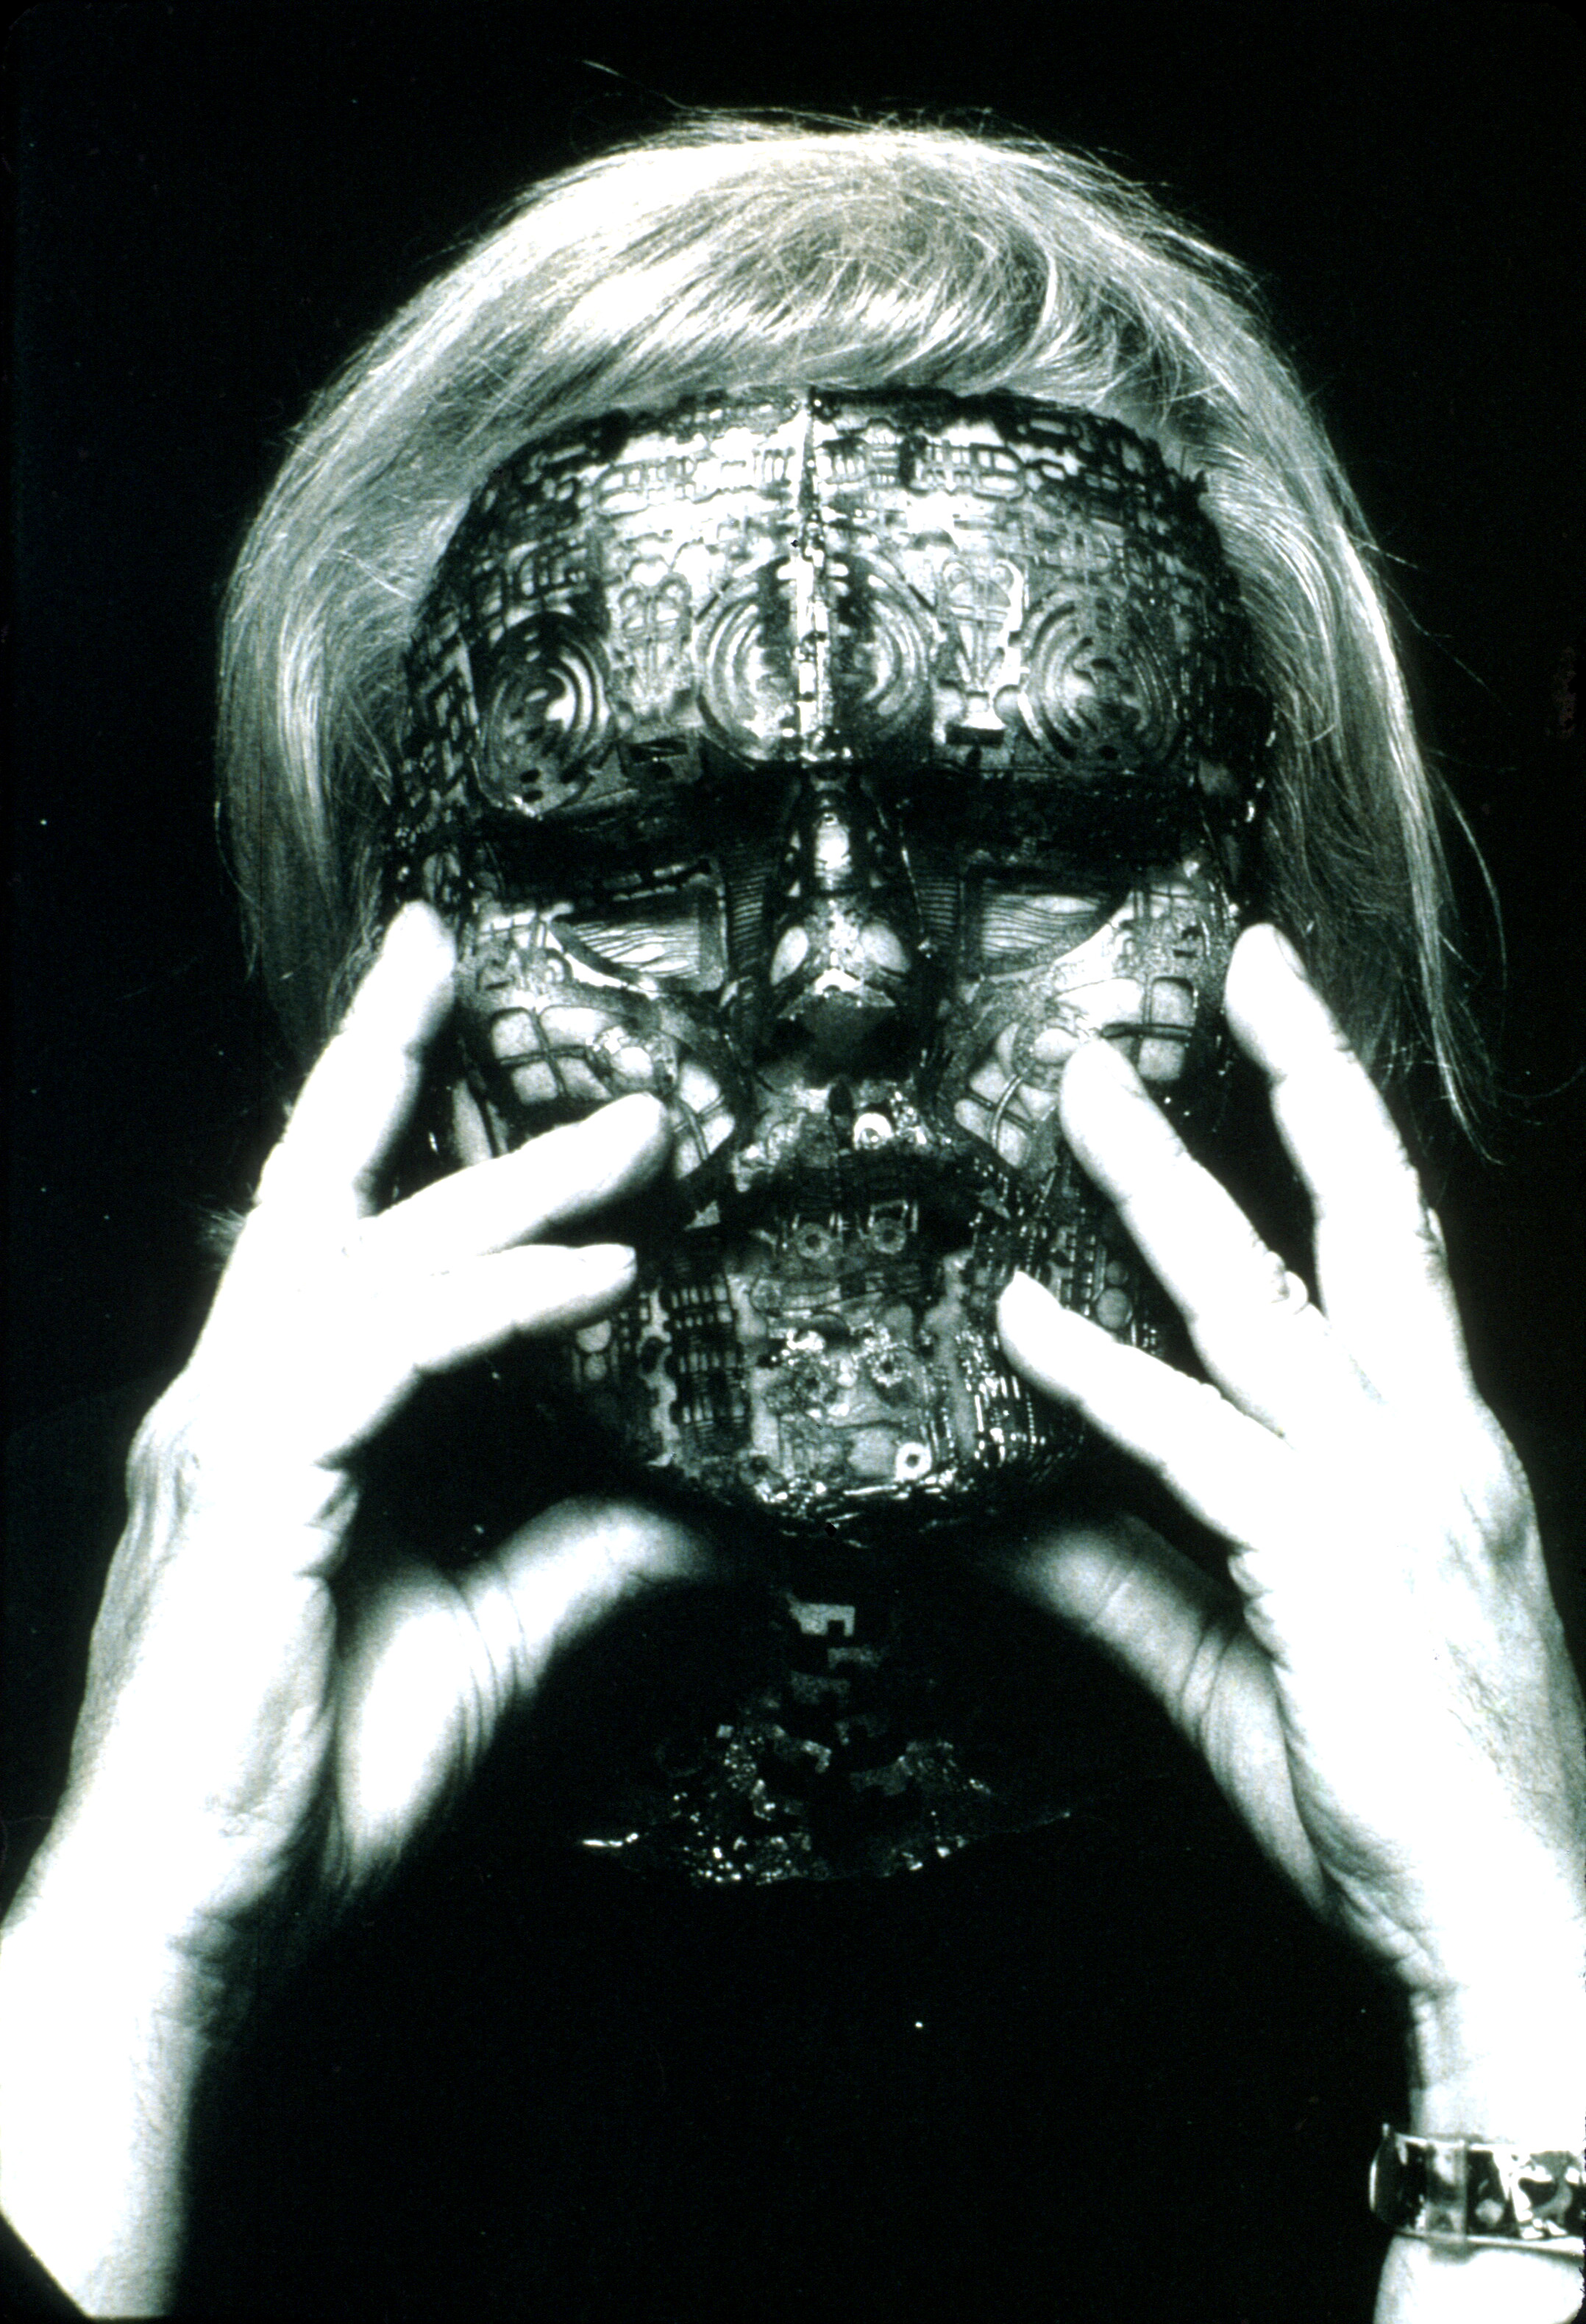 Portrait of artist H. R. Giger with his mask over his face.